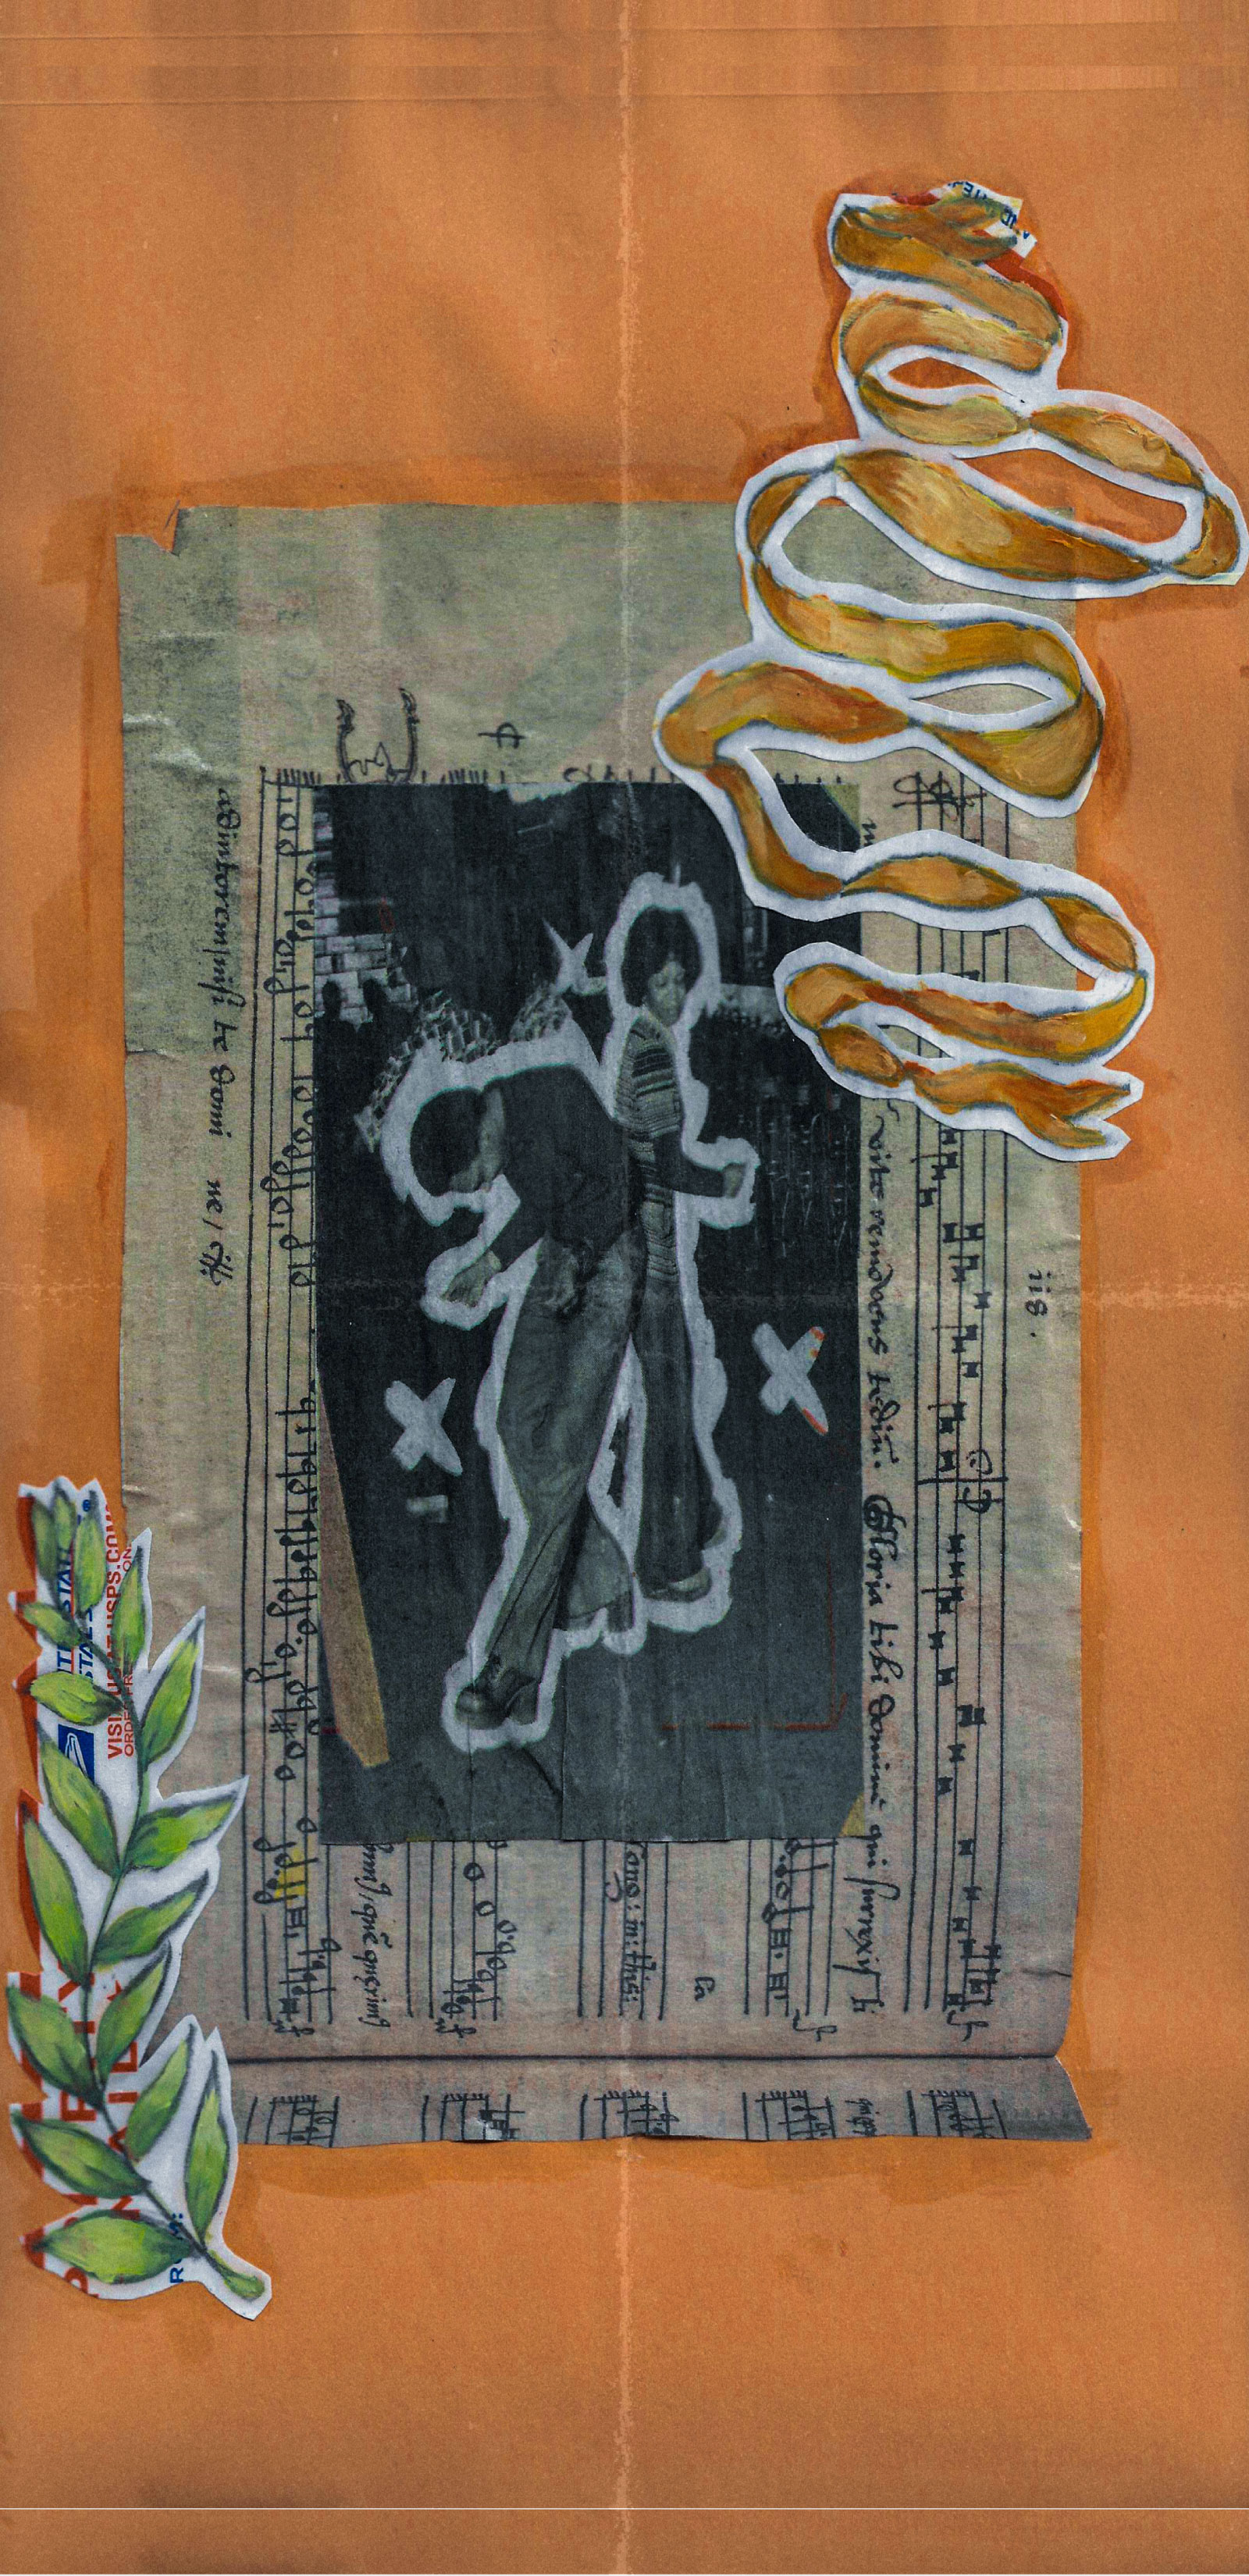 A collage on a manilla envelope. The central image is of a vintage image of Black couple dancing, both wearing 1970s-style bell bottoms. This is set on bars of sheet music and framed by two collaged elements - green leaves in the lower left and a ribbon in the upper right